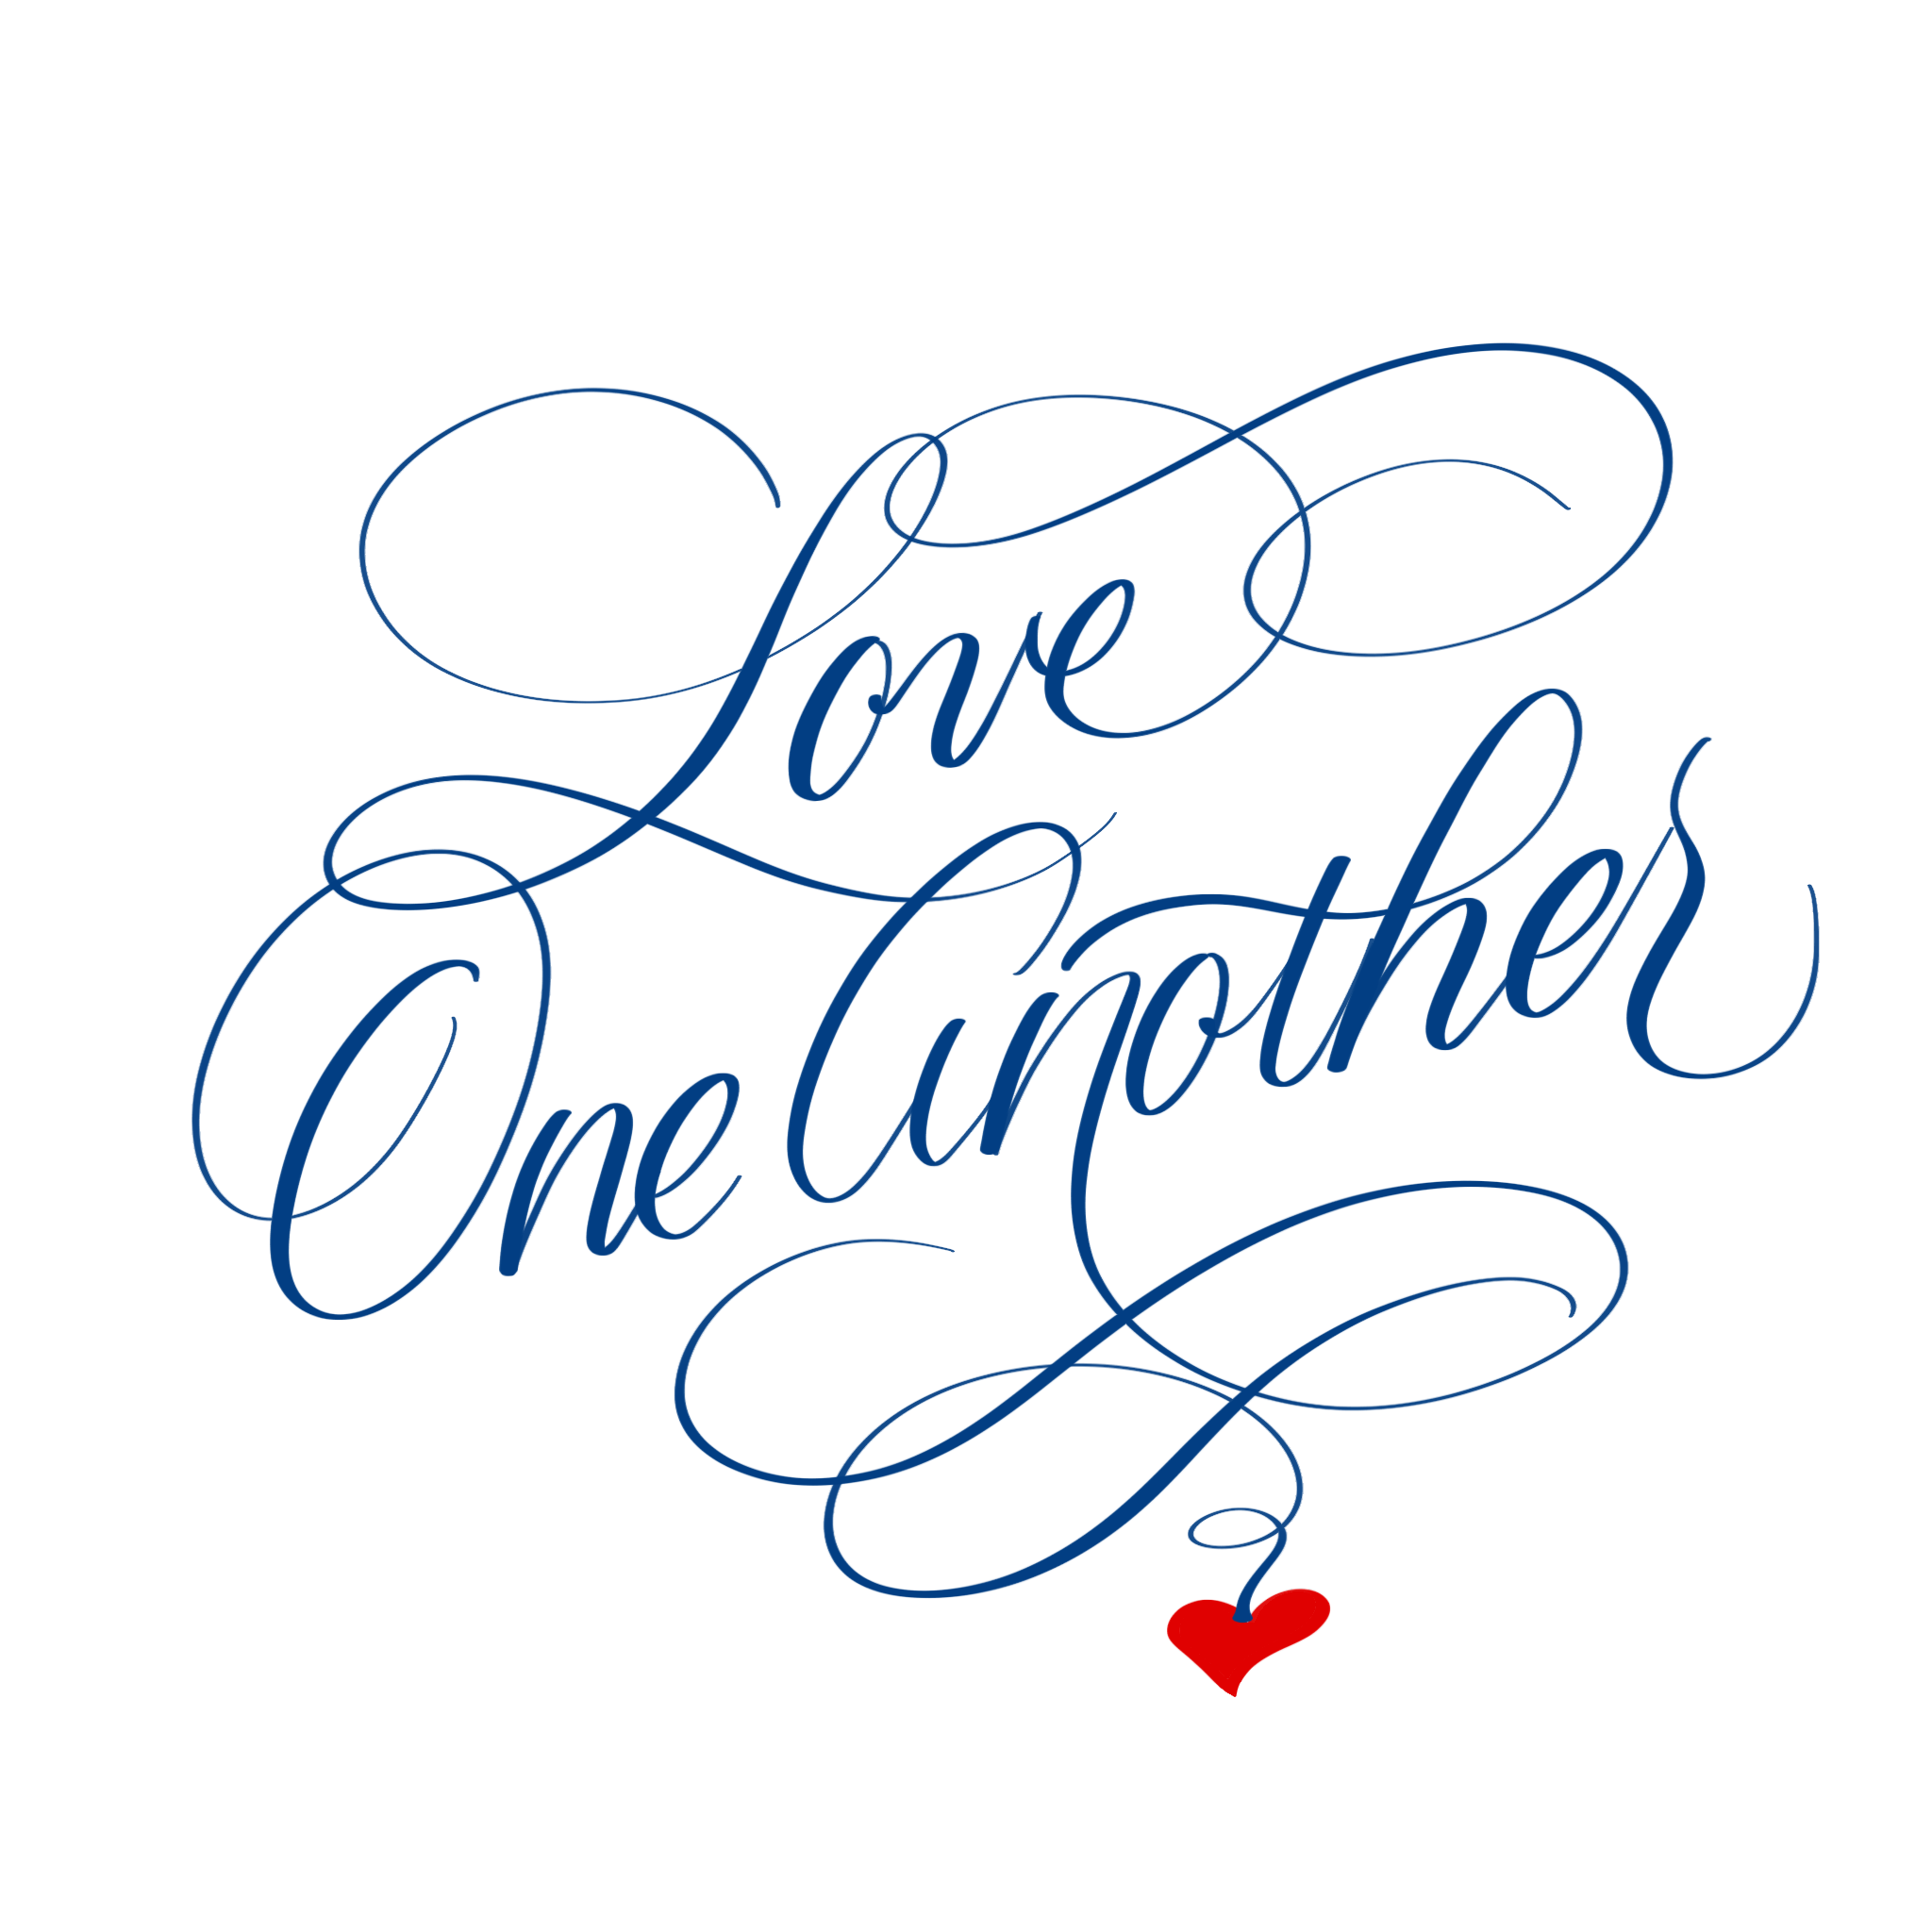 Love one another blue